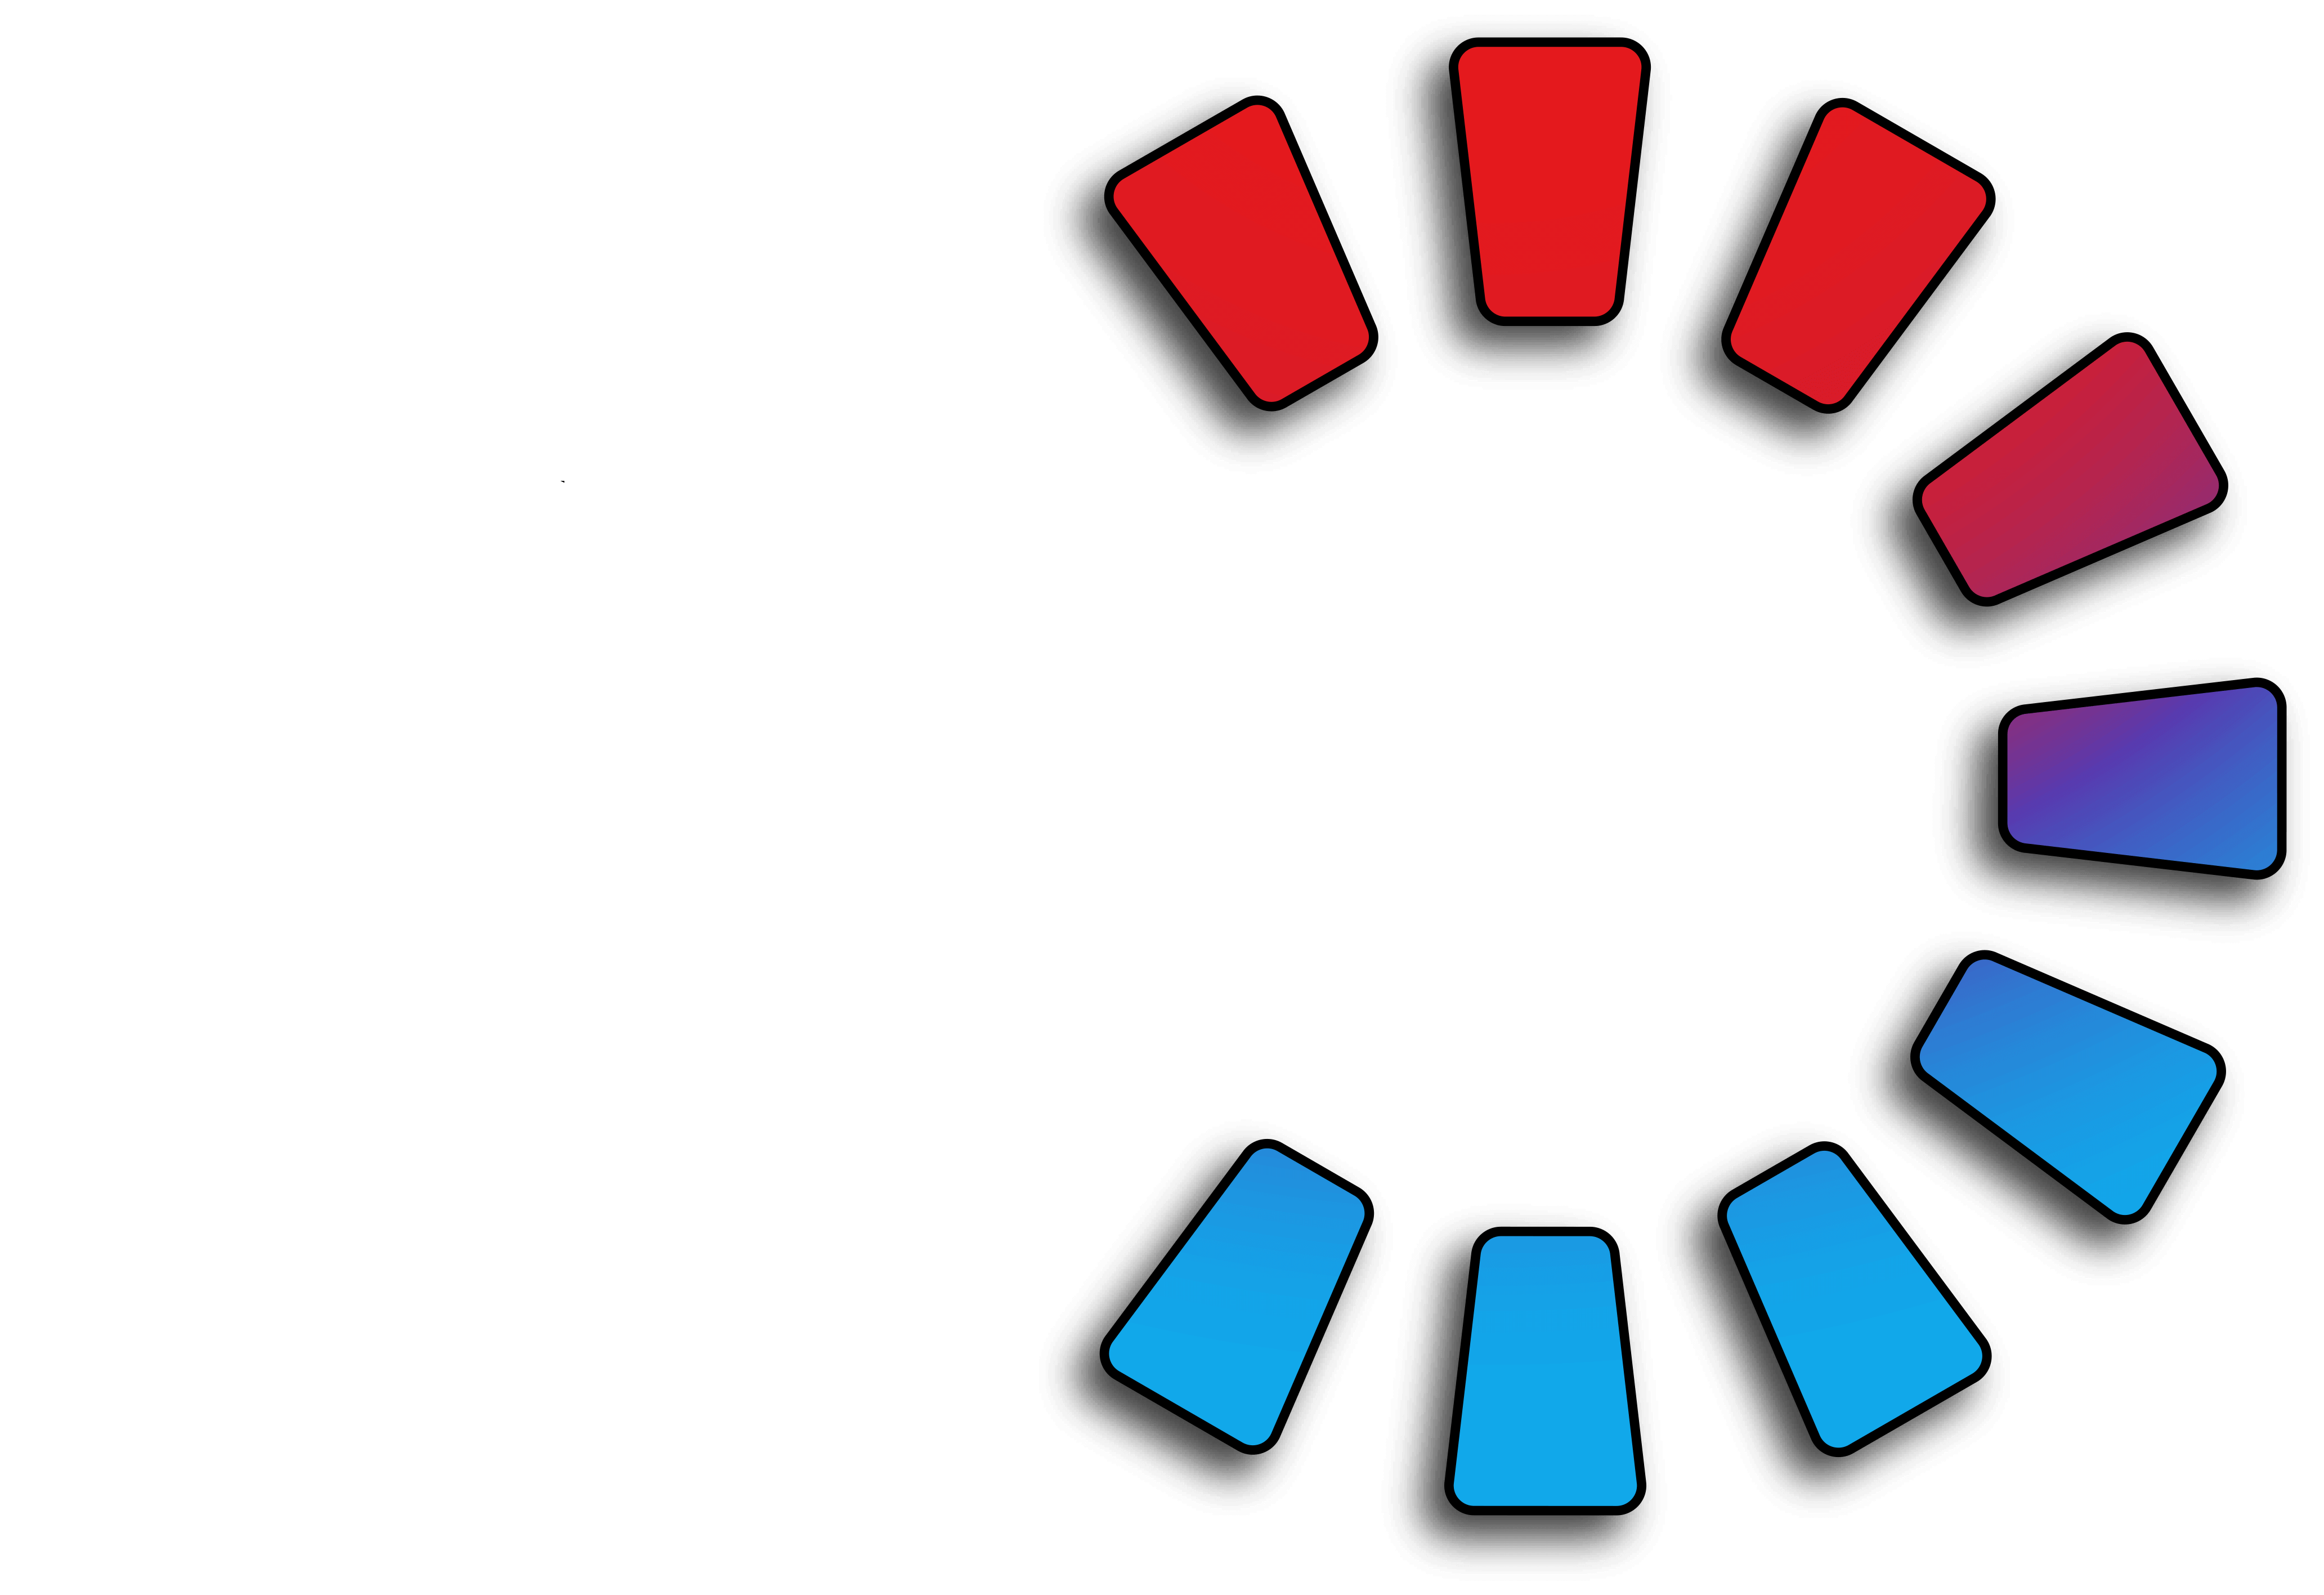 Climate conditioning colchester essex. Fridge clipart air conditioner